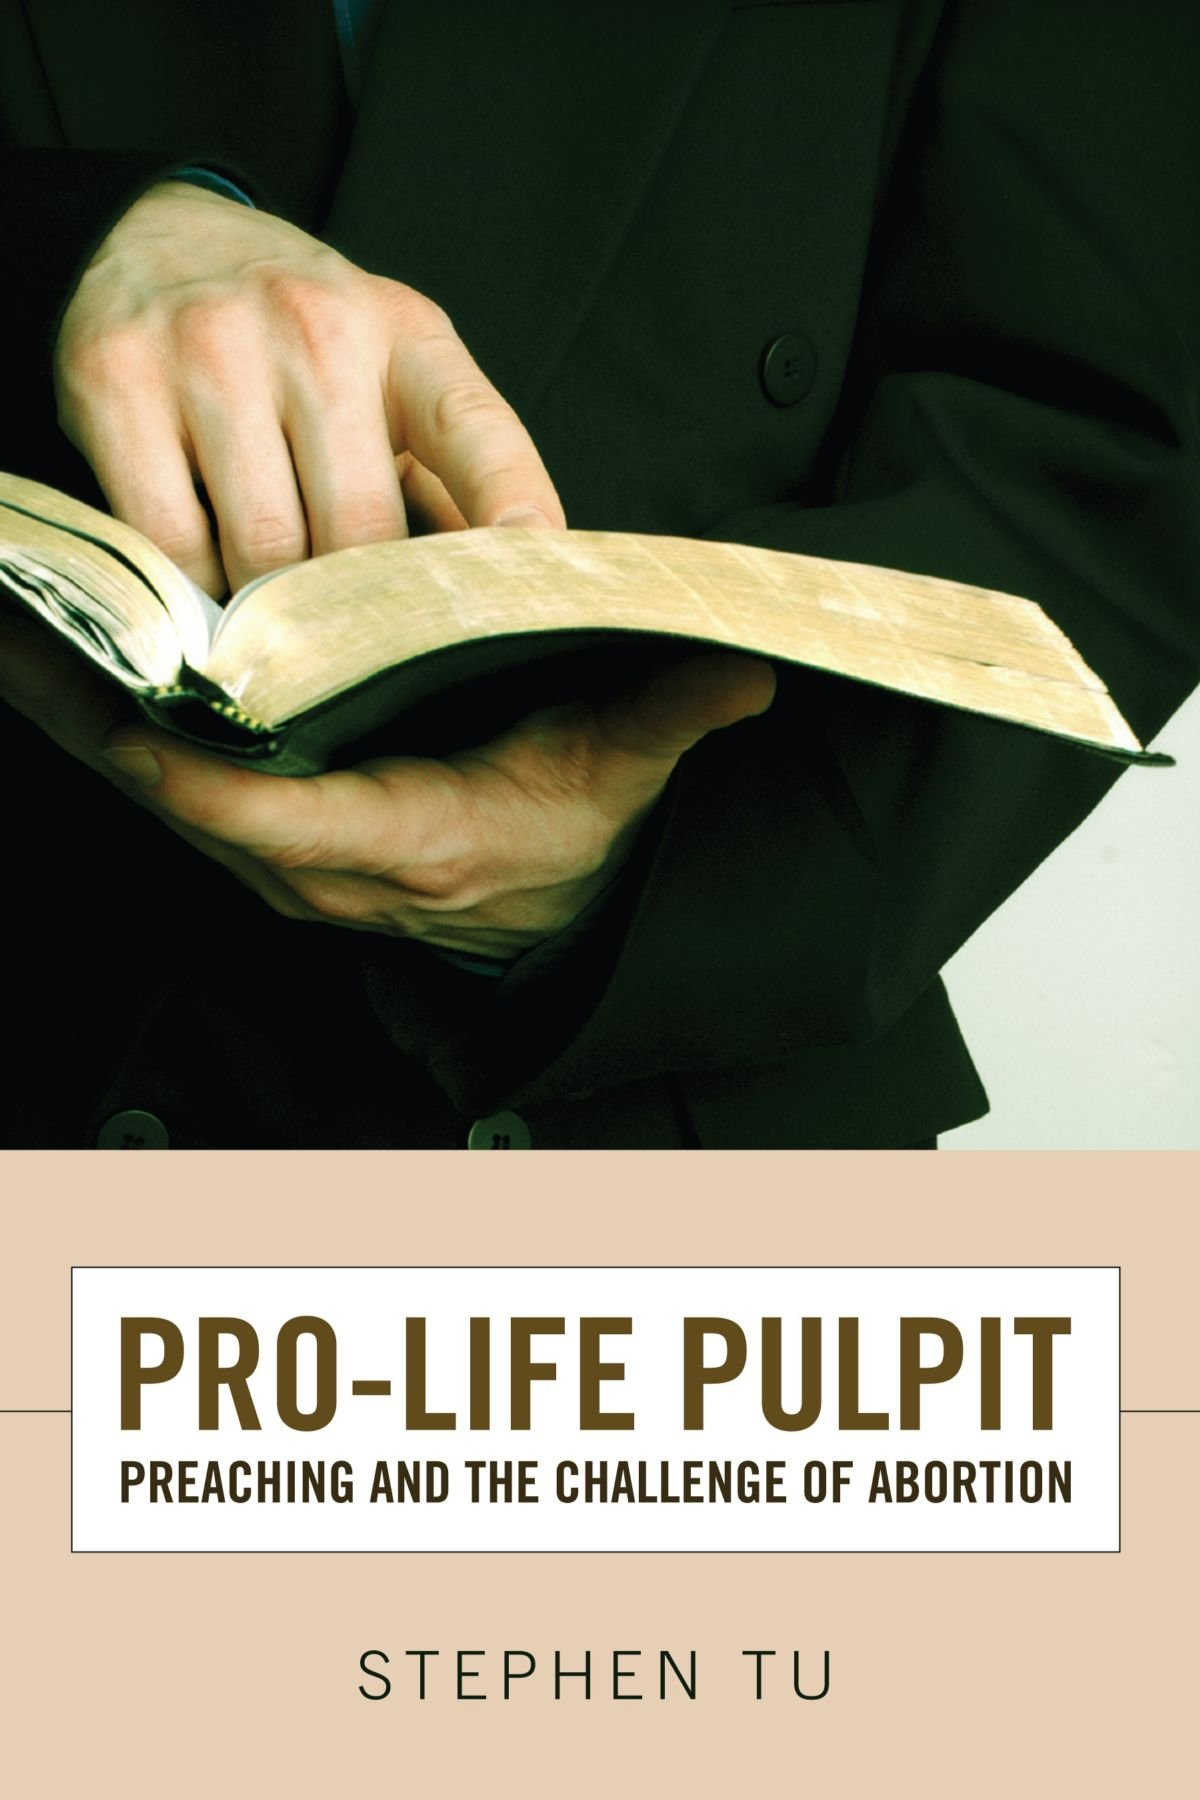 Download Pro-Life Pulpit: Preaching and the Challenge of Abortion PDF